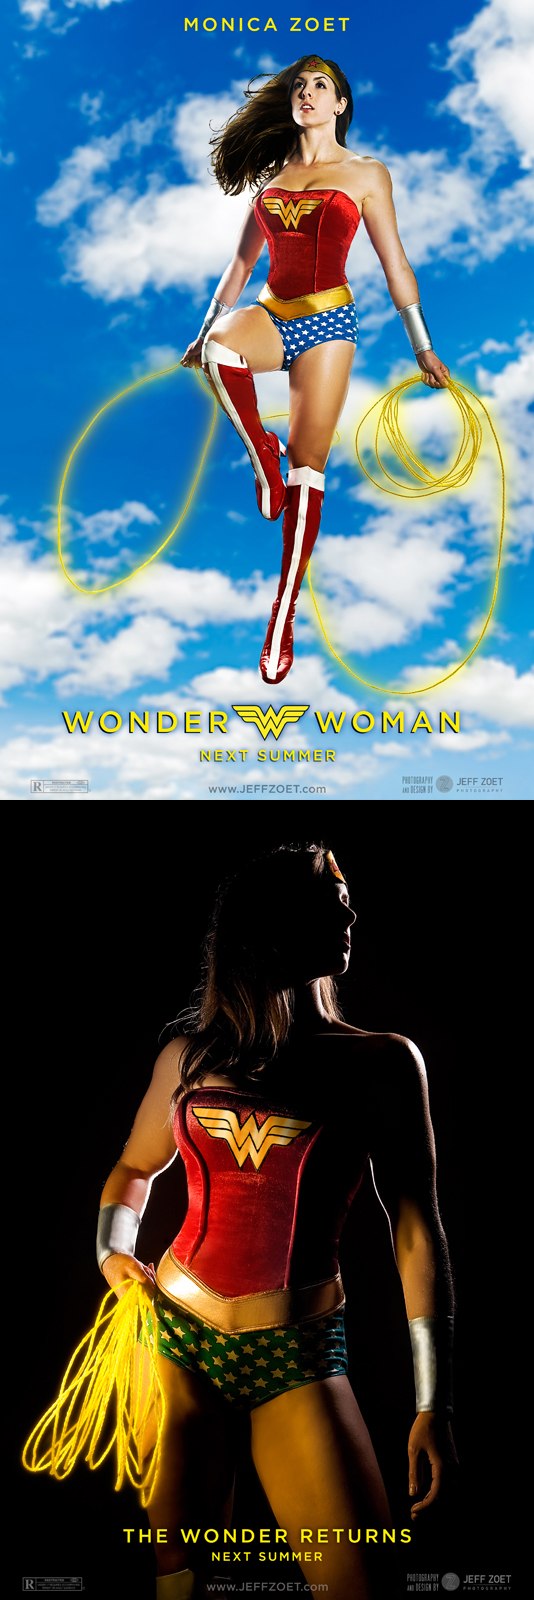 his studio - Pittsburgh, PA Oct 07, 2009 Jeff Zoet Photography 2009 Wonder Woman!